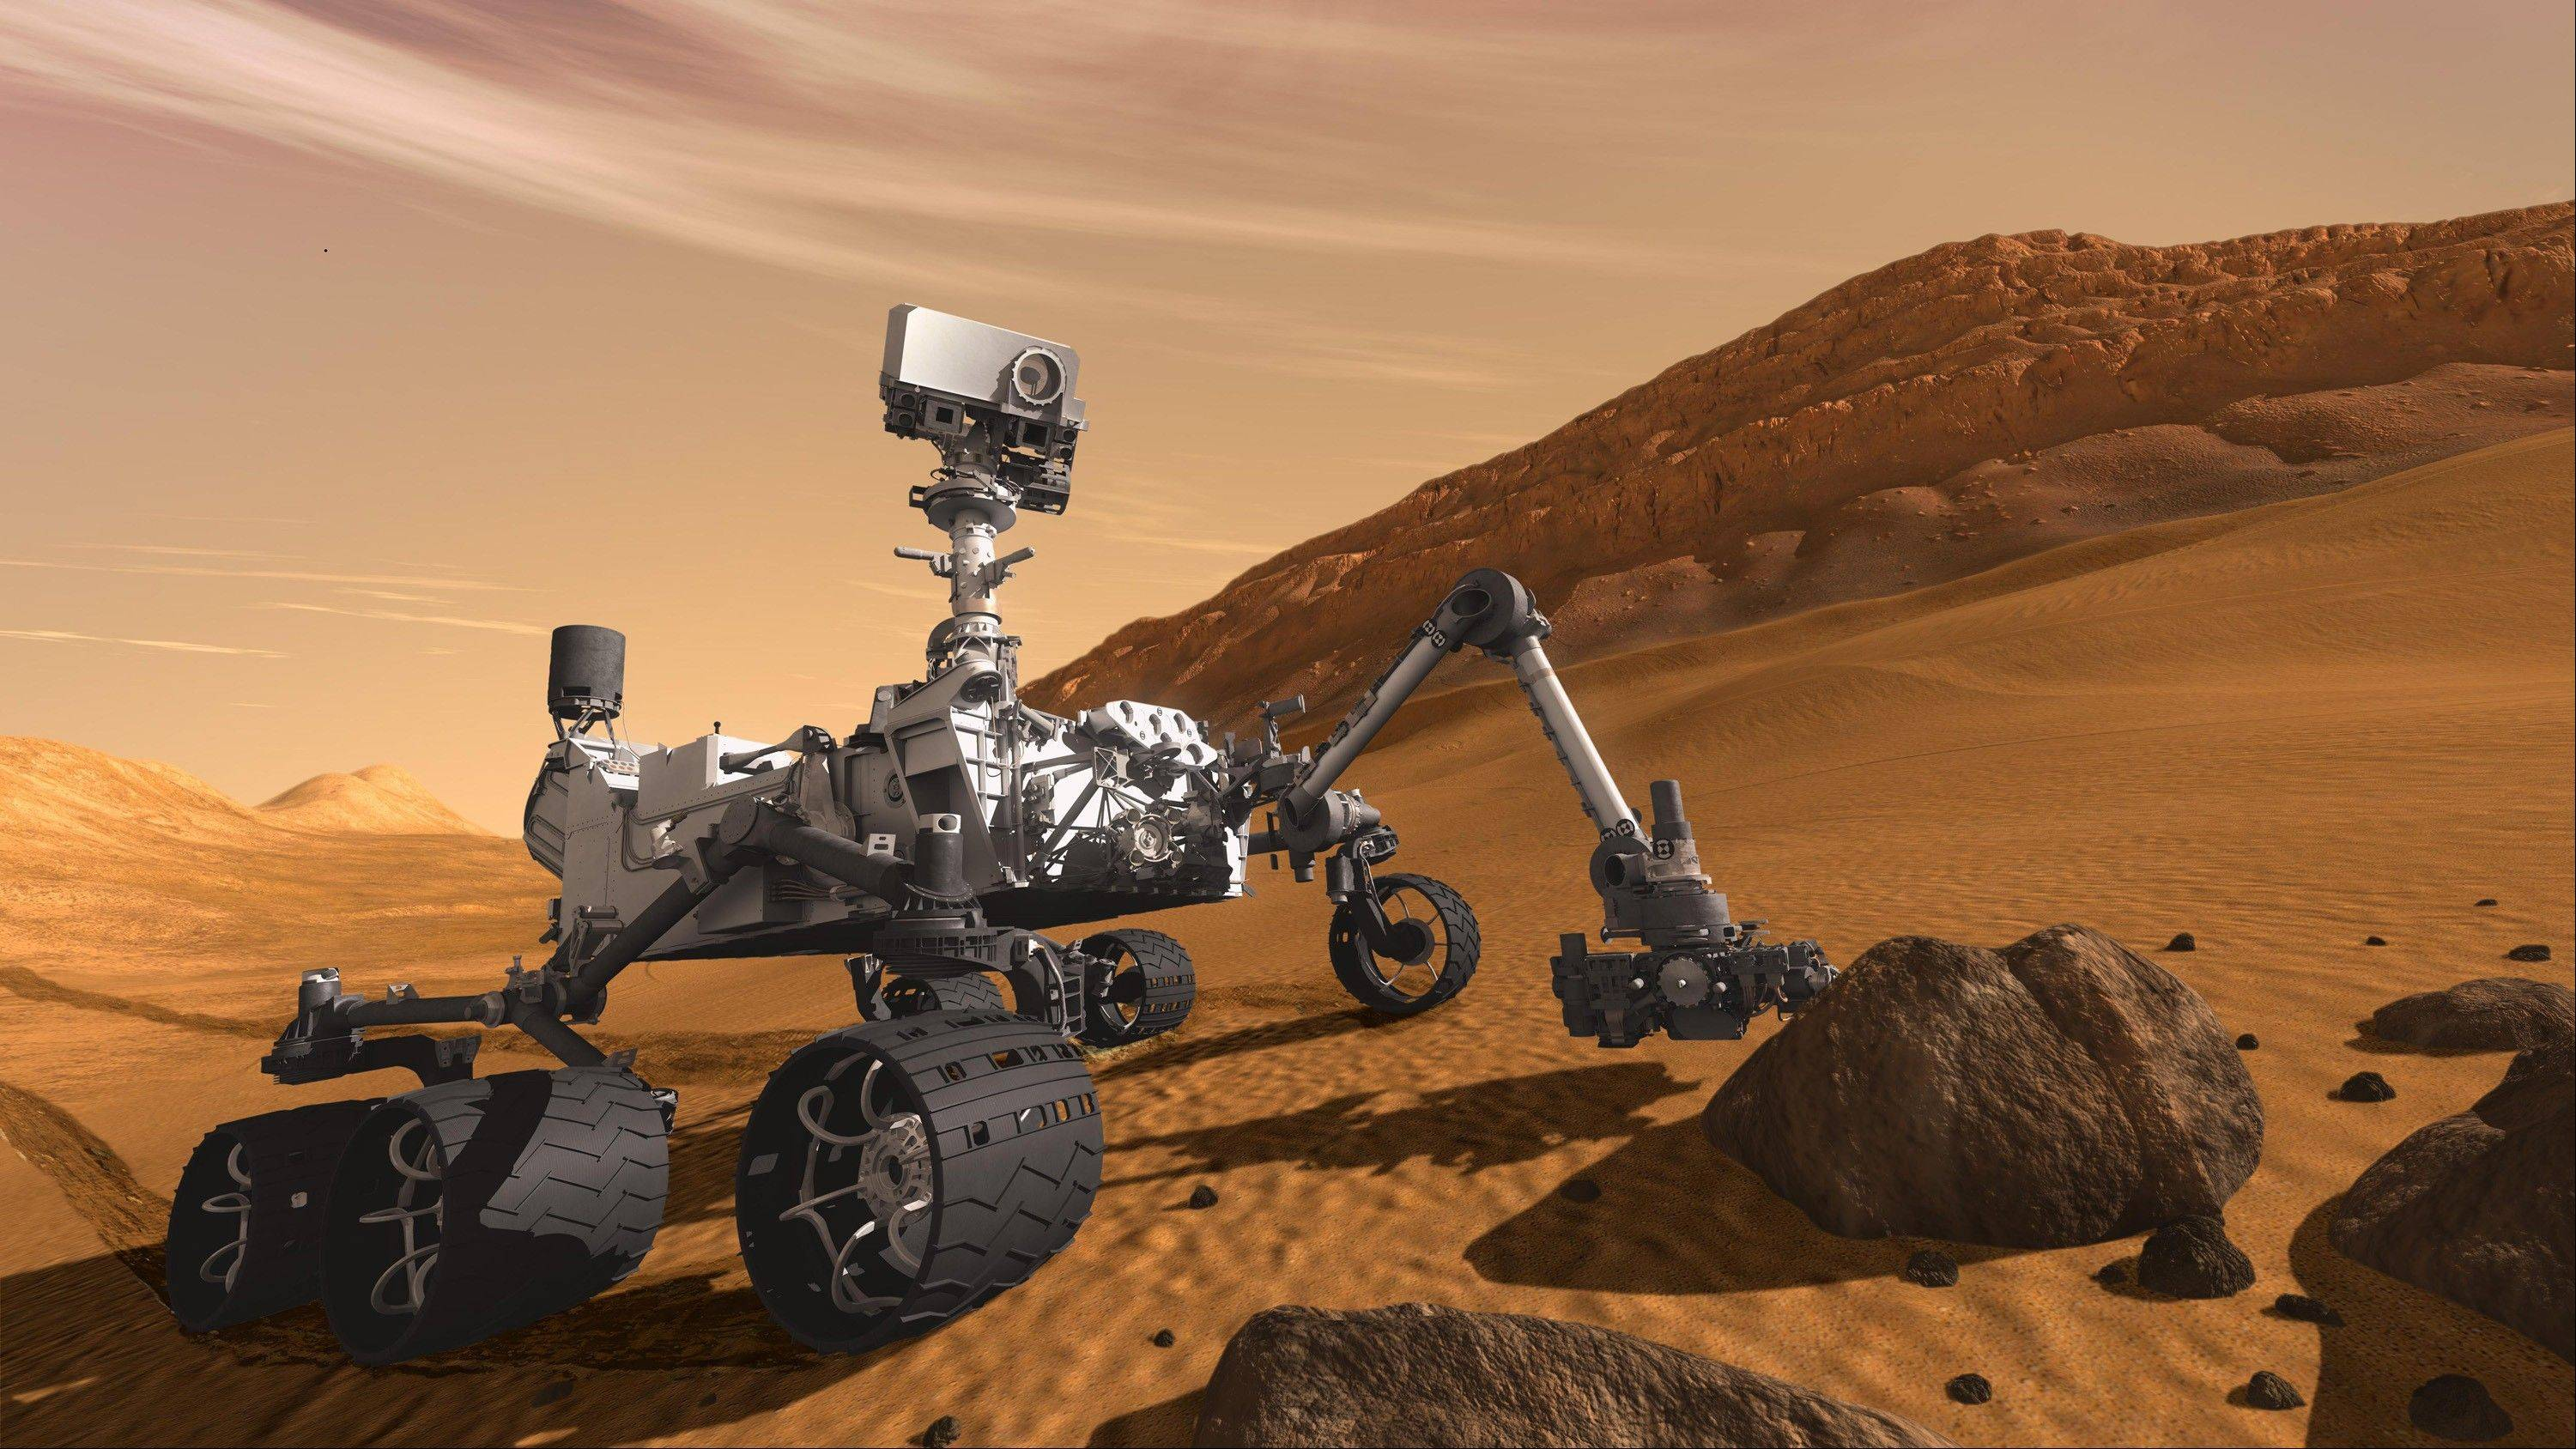 In this 2011 artist's rendering provided by NASA/JPL-Caltech, the Mars Science Laboratory Curiosity rover examines a rock on Mars.